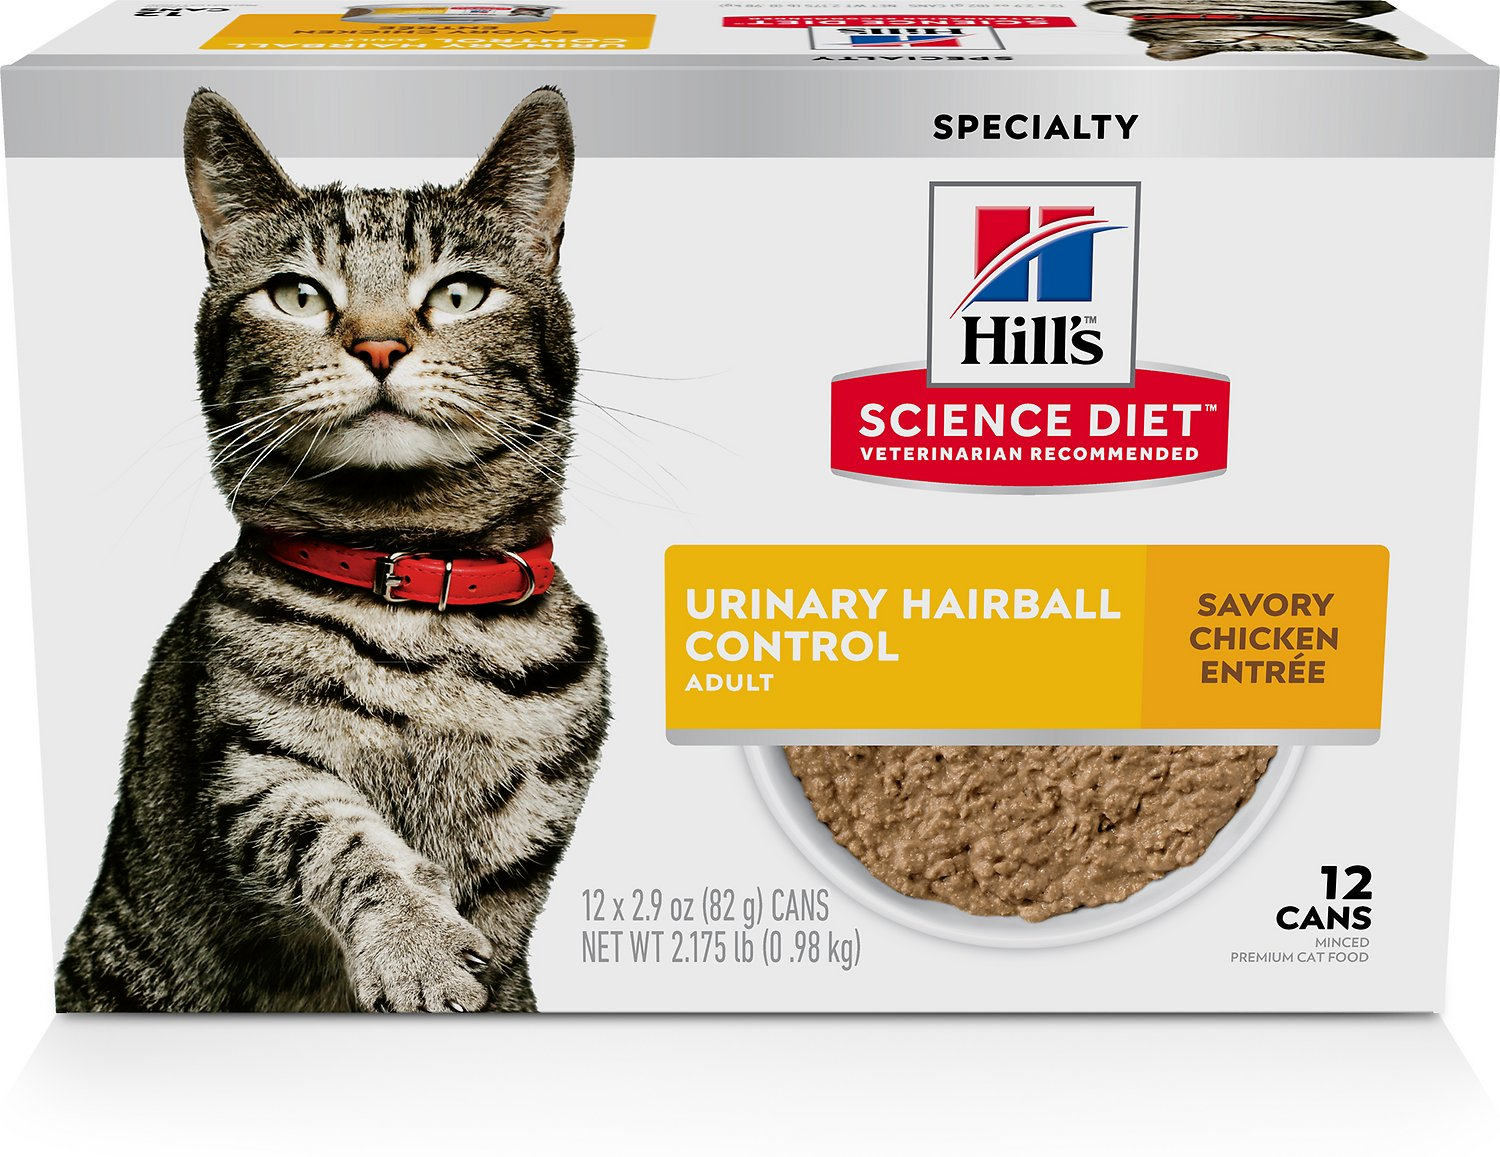 hills science diet cat food hairball control